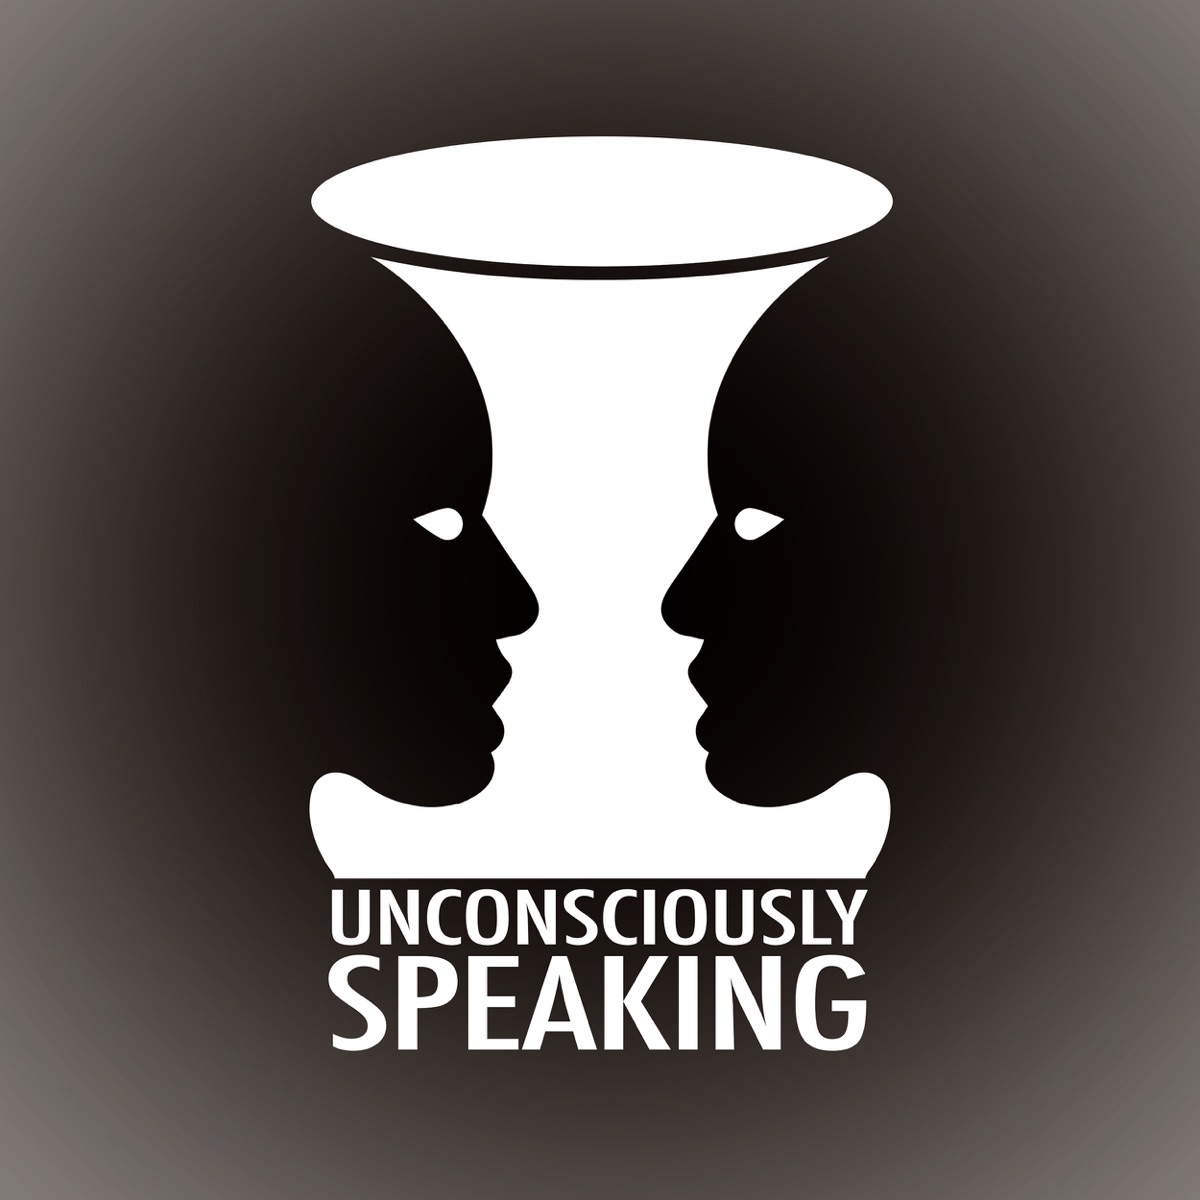 Unconsciously Speaking